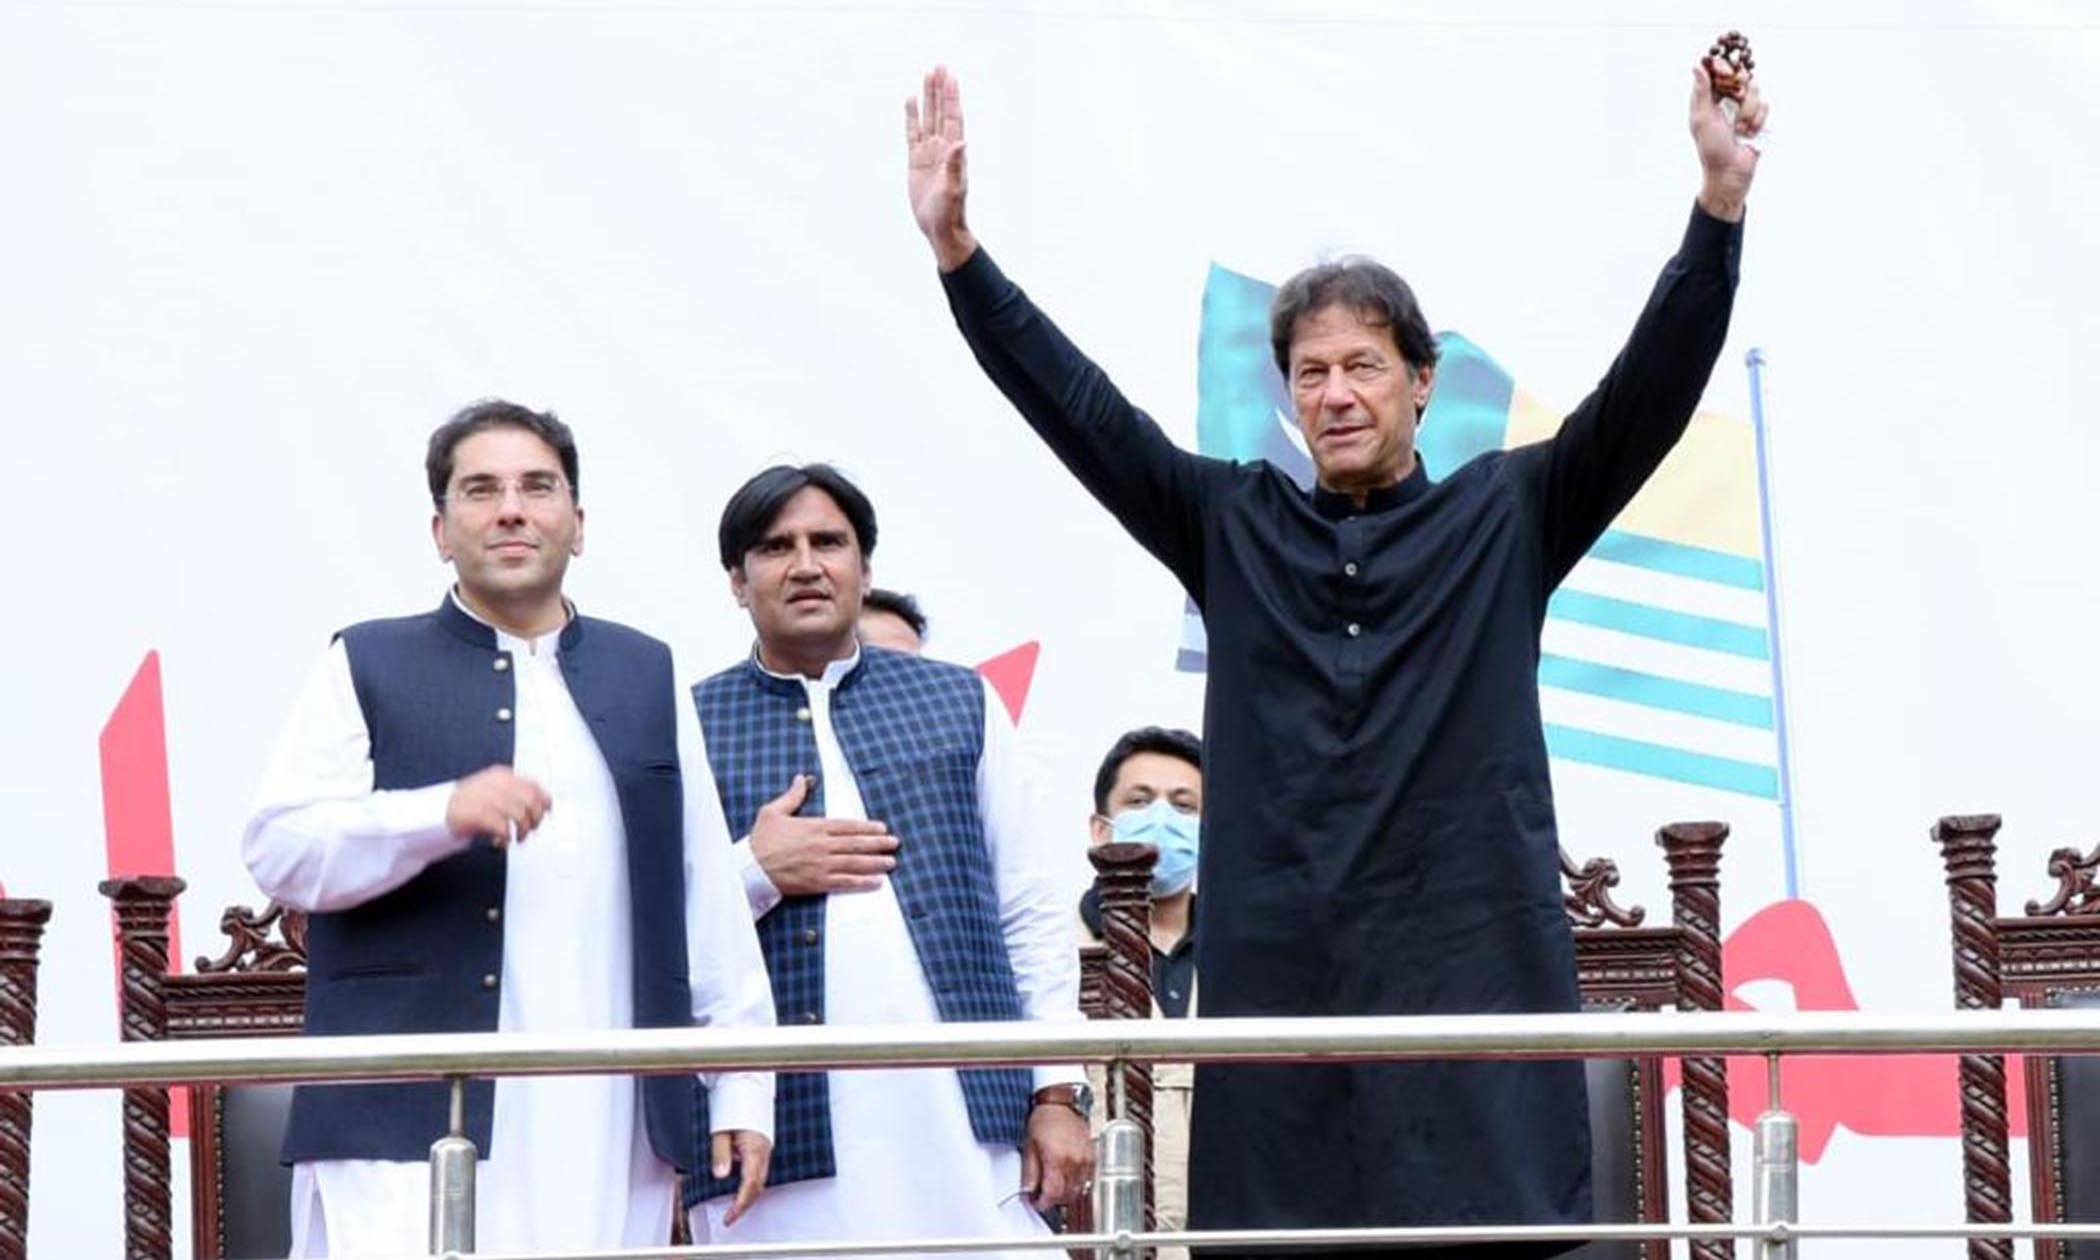 Prime Minister Imran Khan gestures during a rally in Azad Jammu and Kashmir's Tarar Khal on Friday. — PID